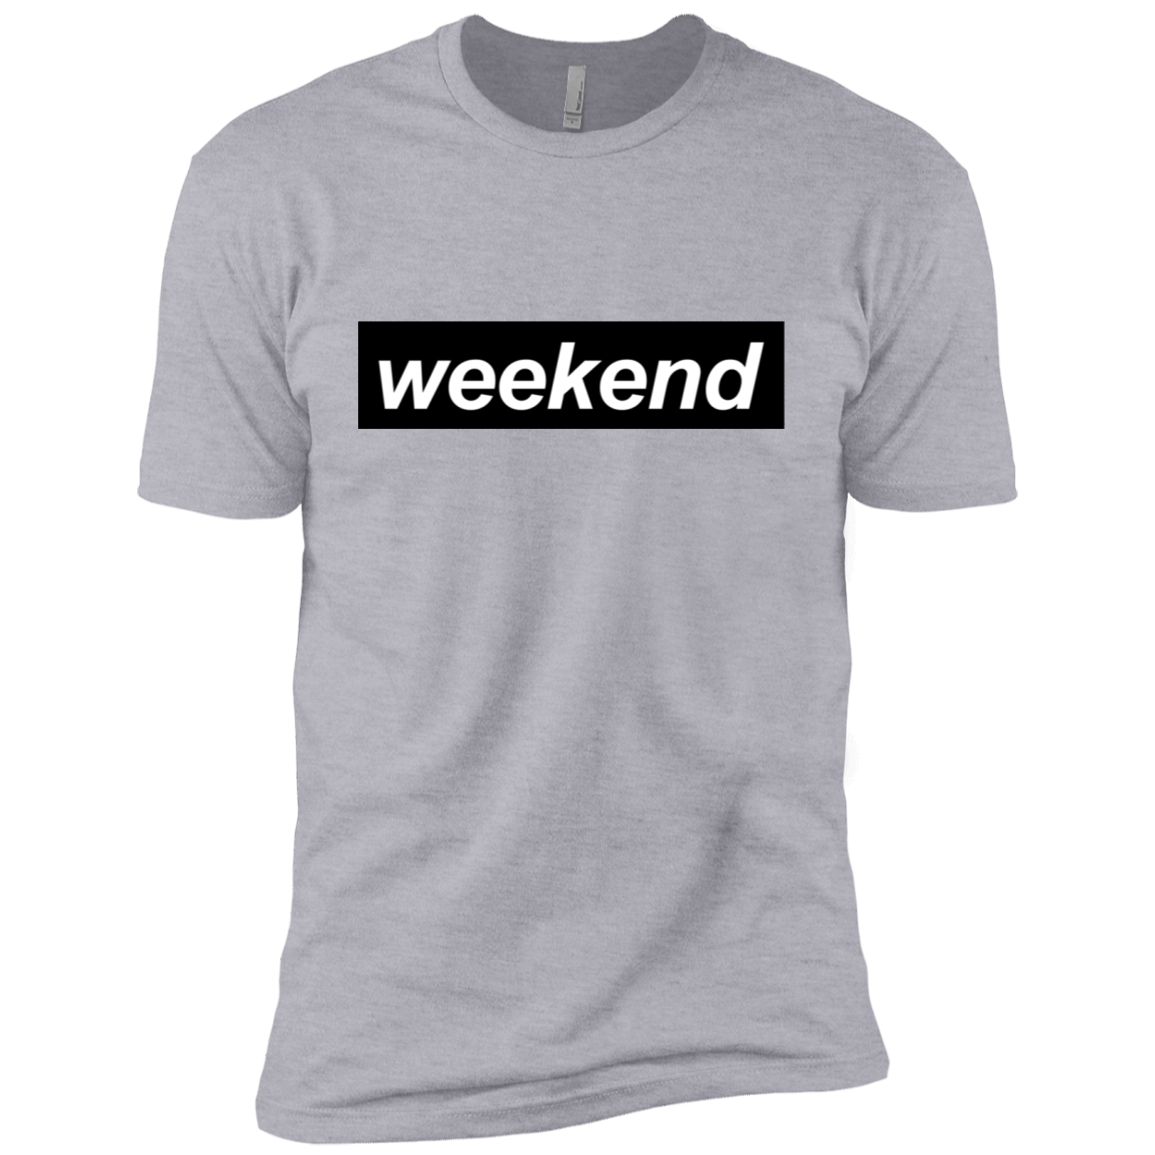 It's the Weekend Men's Classic Tee